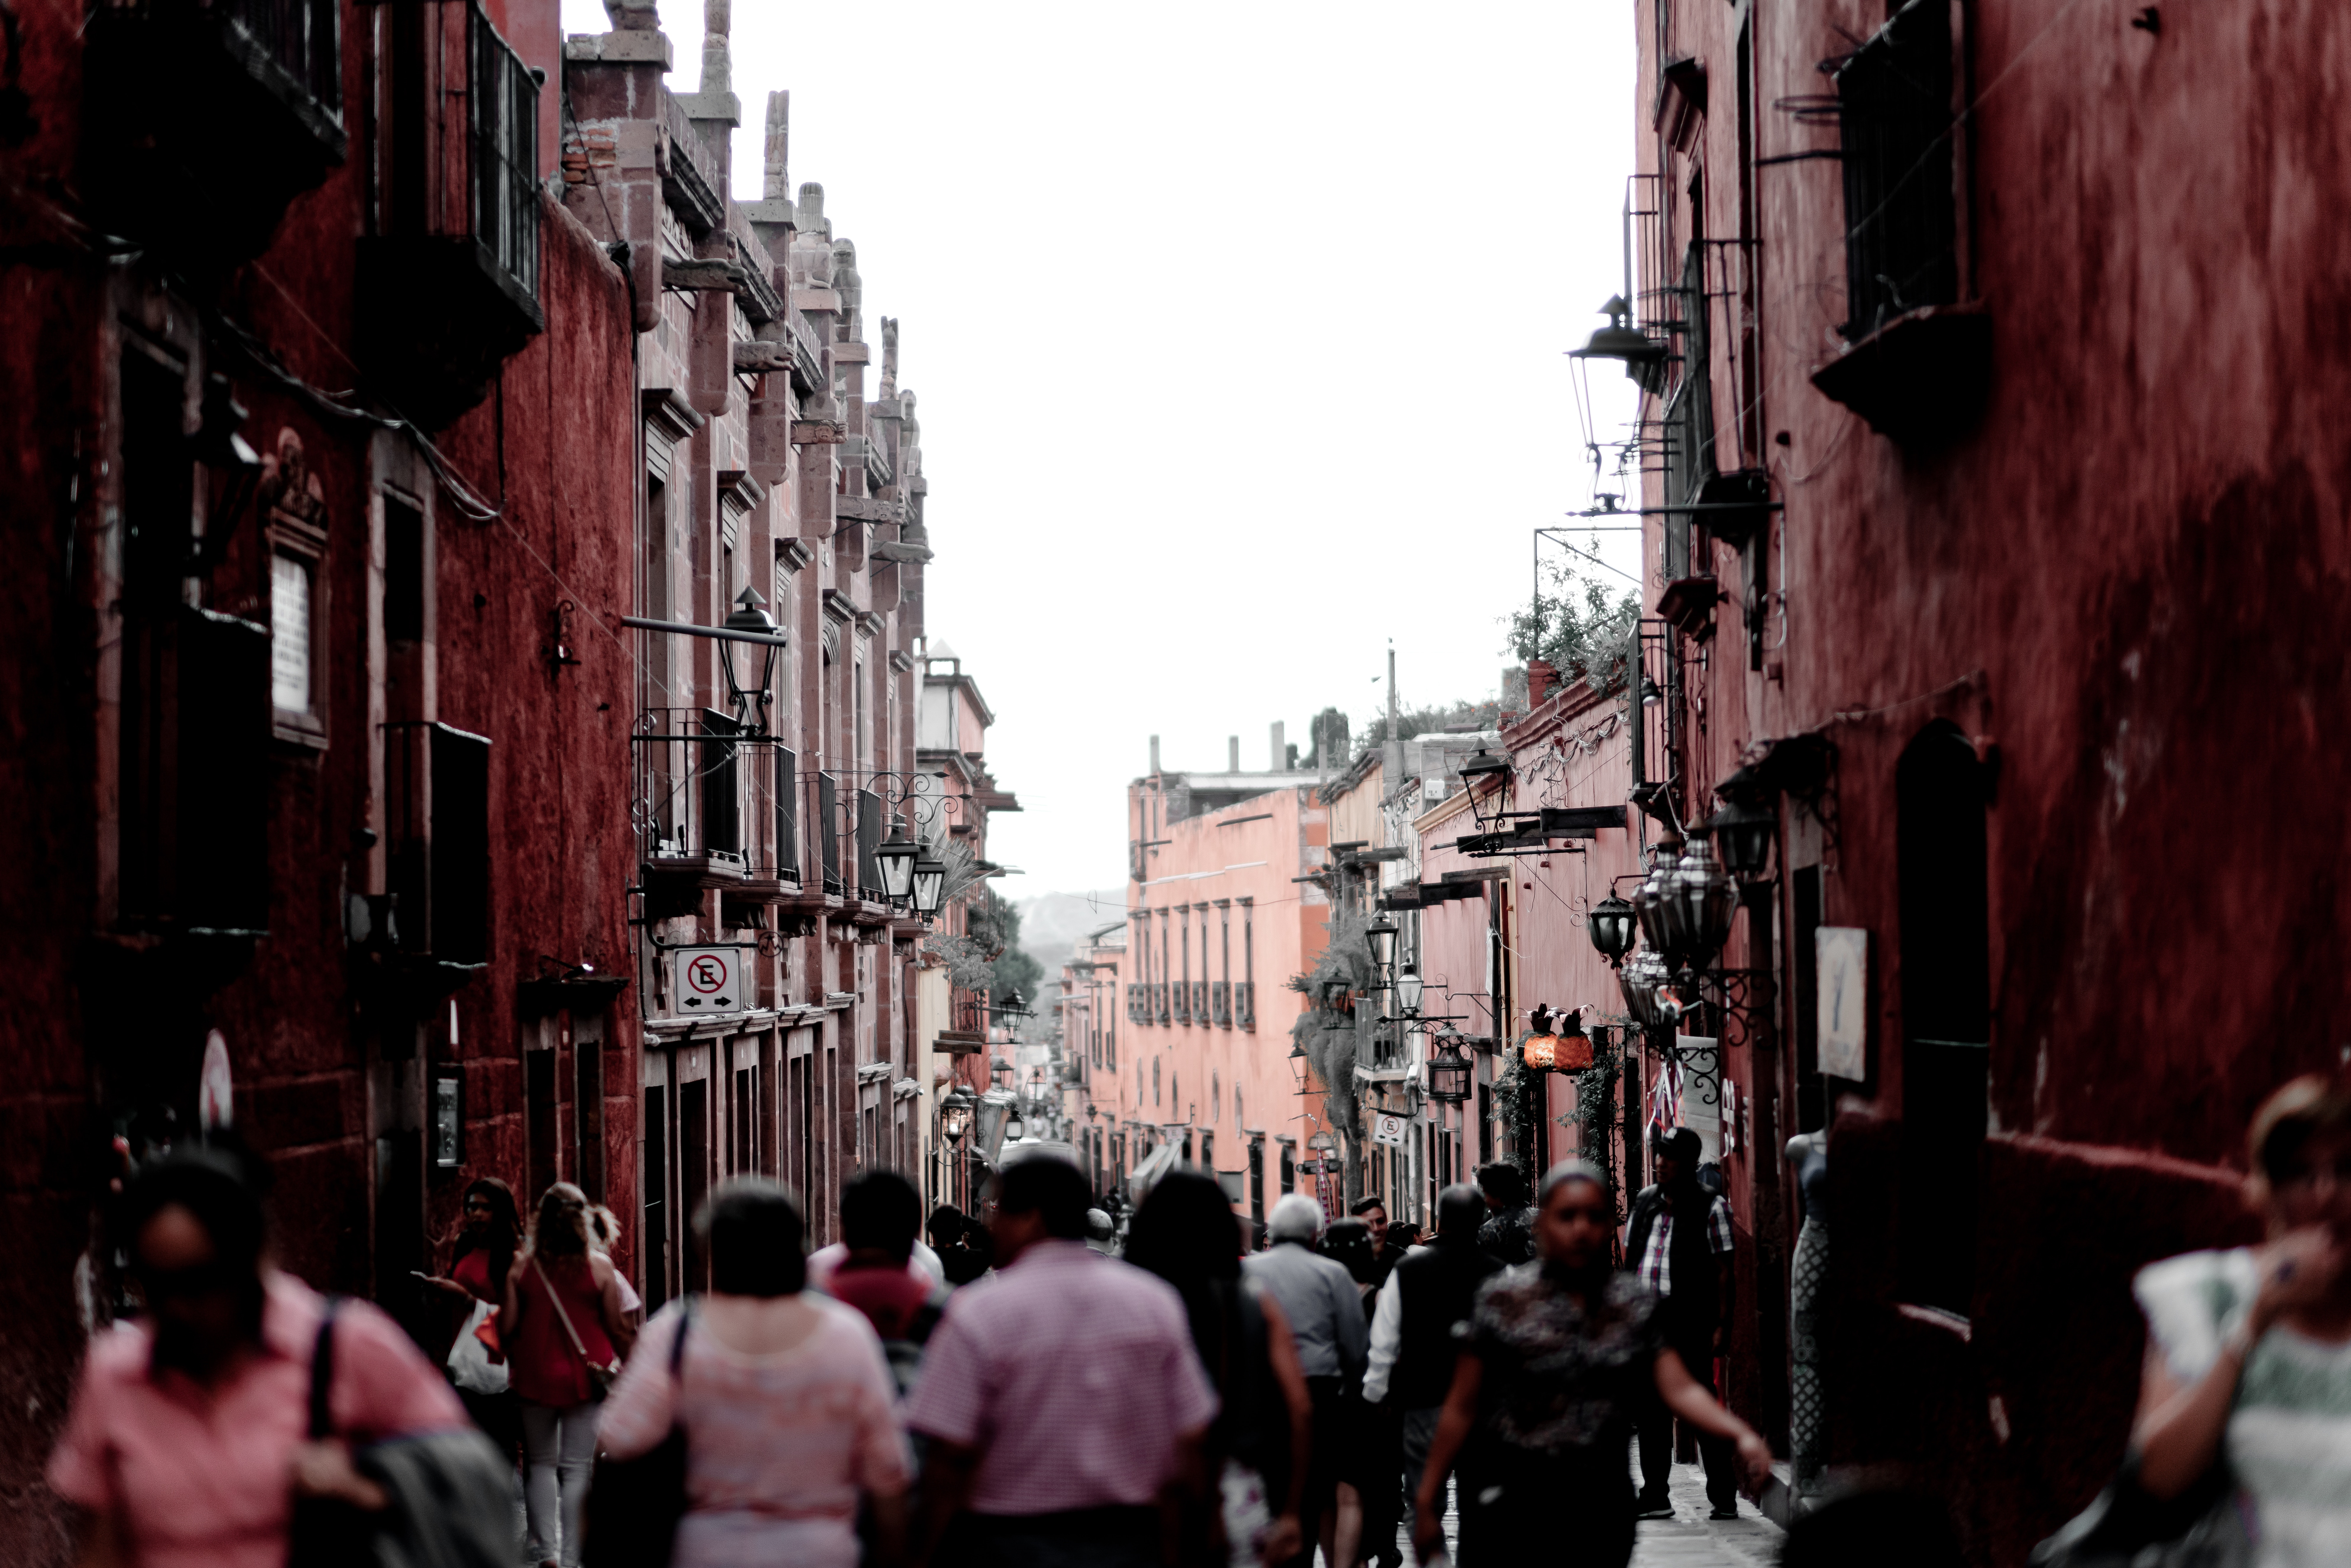 photo of a crowded street in Mexico